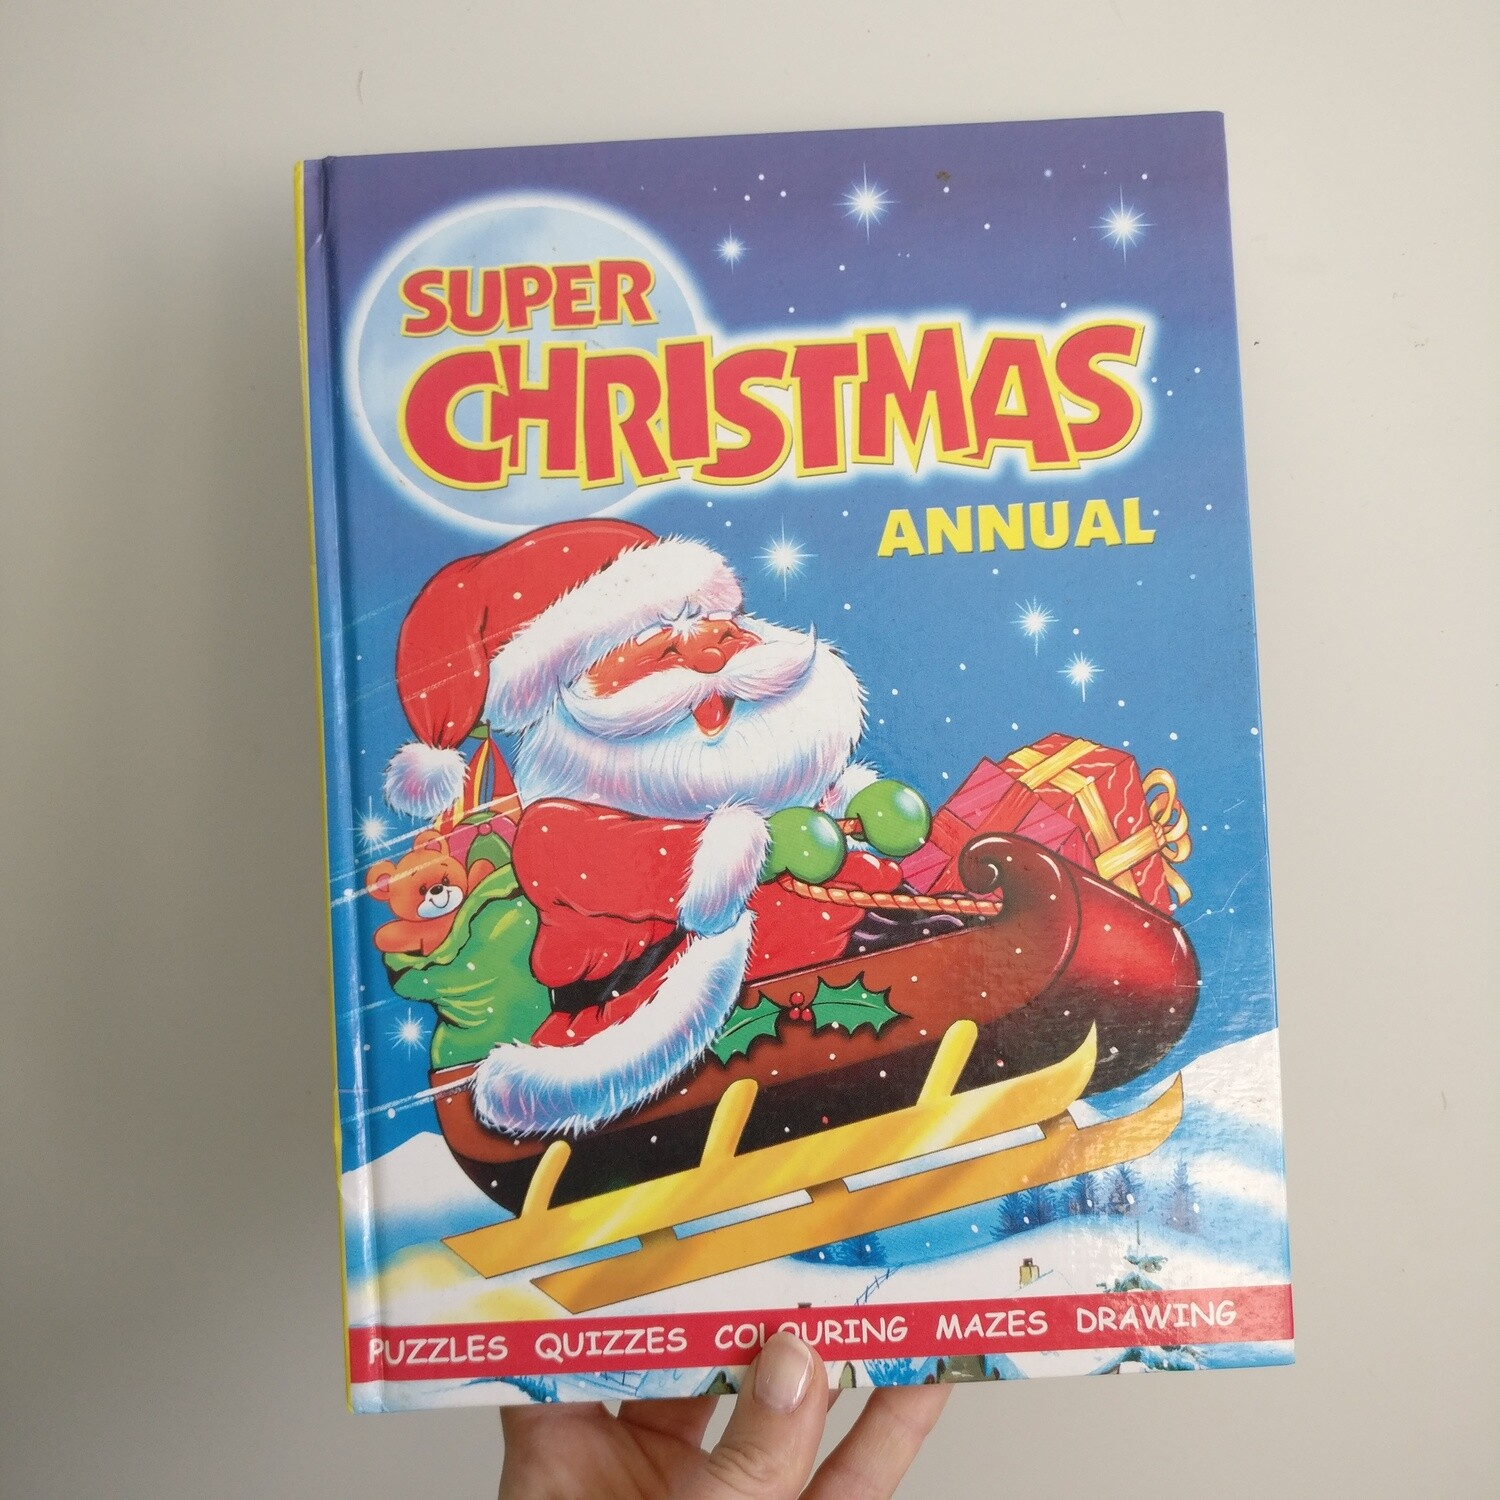 Super Christmas Annual - santa